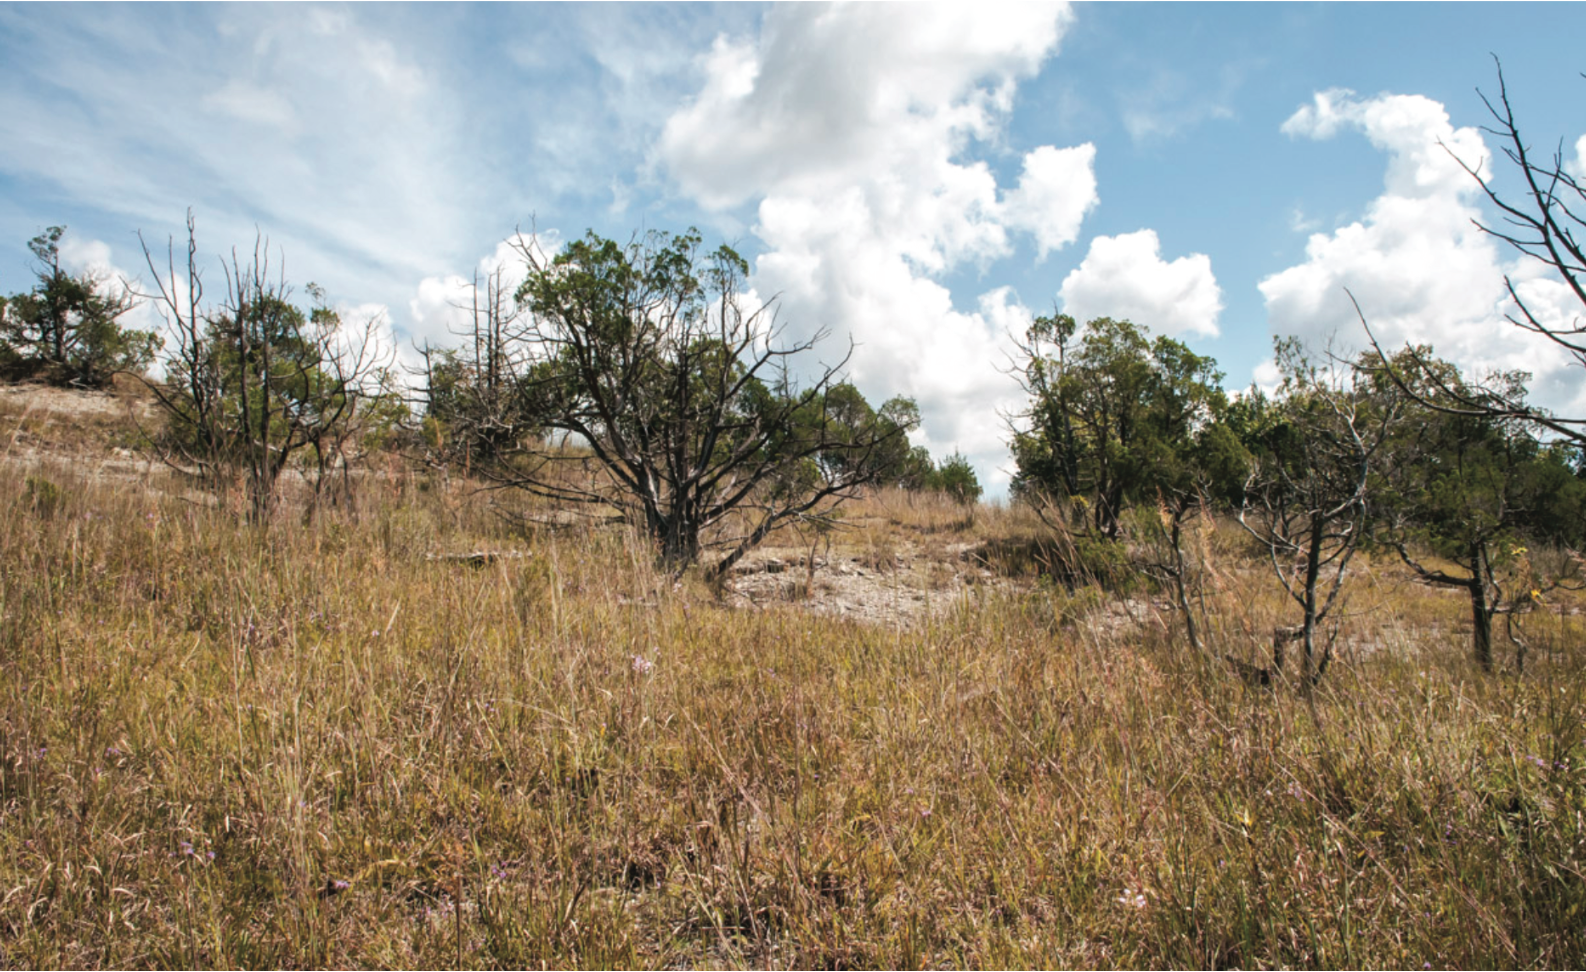 250-year-old redder trees dot privately owned Nine-Acre Barren in Decatur Co., Tennessee, a property that is located in an area with rapid development. SGI will work to ensure the best remaining natural grasslands are preserved for future generations.